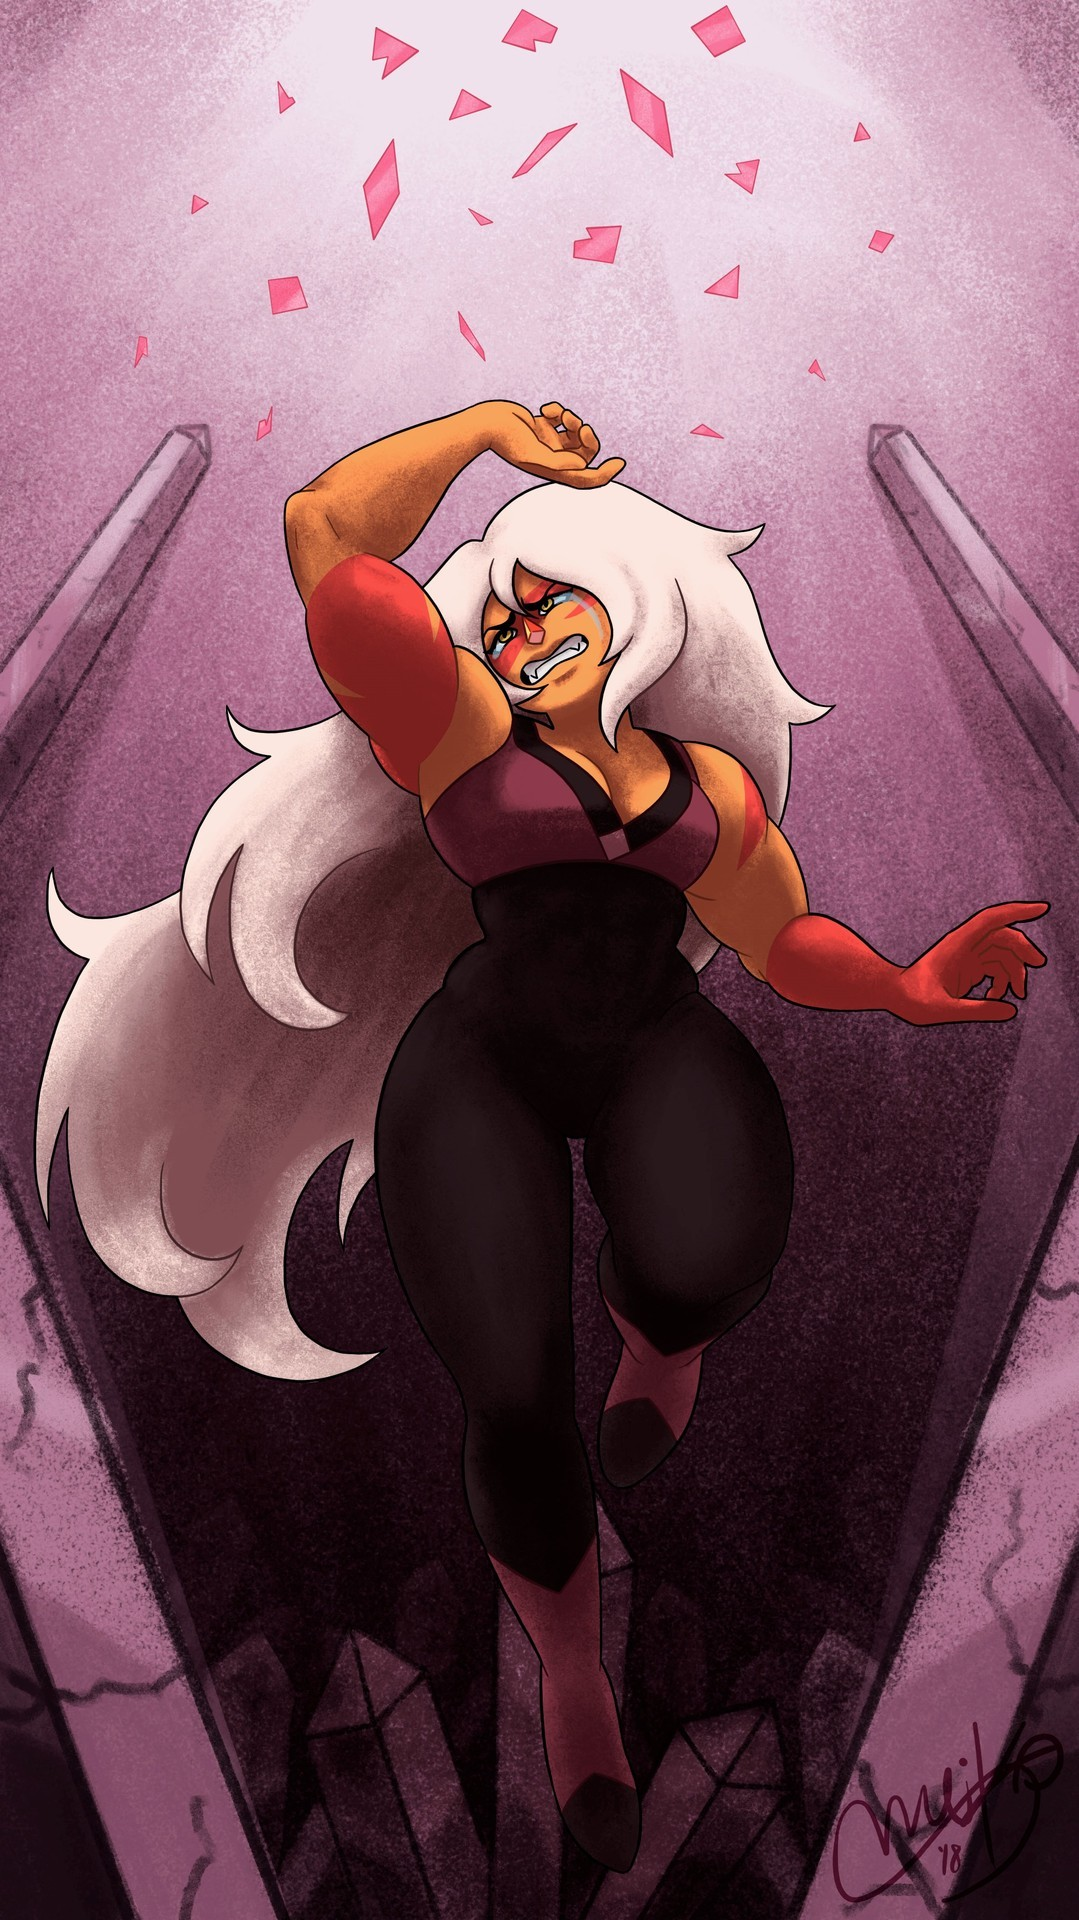 Jasper and Pink's shattering